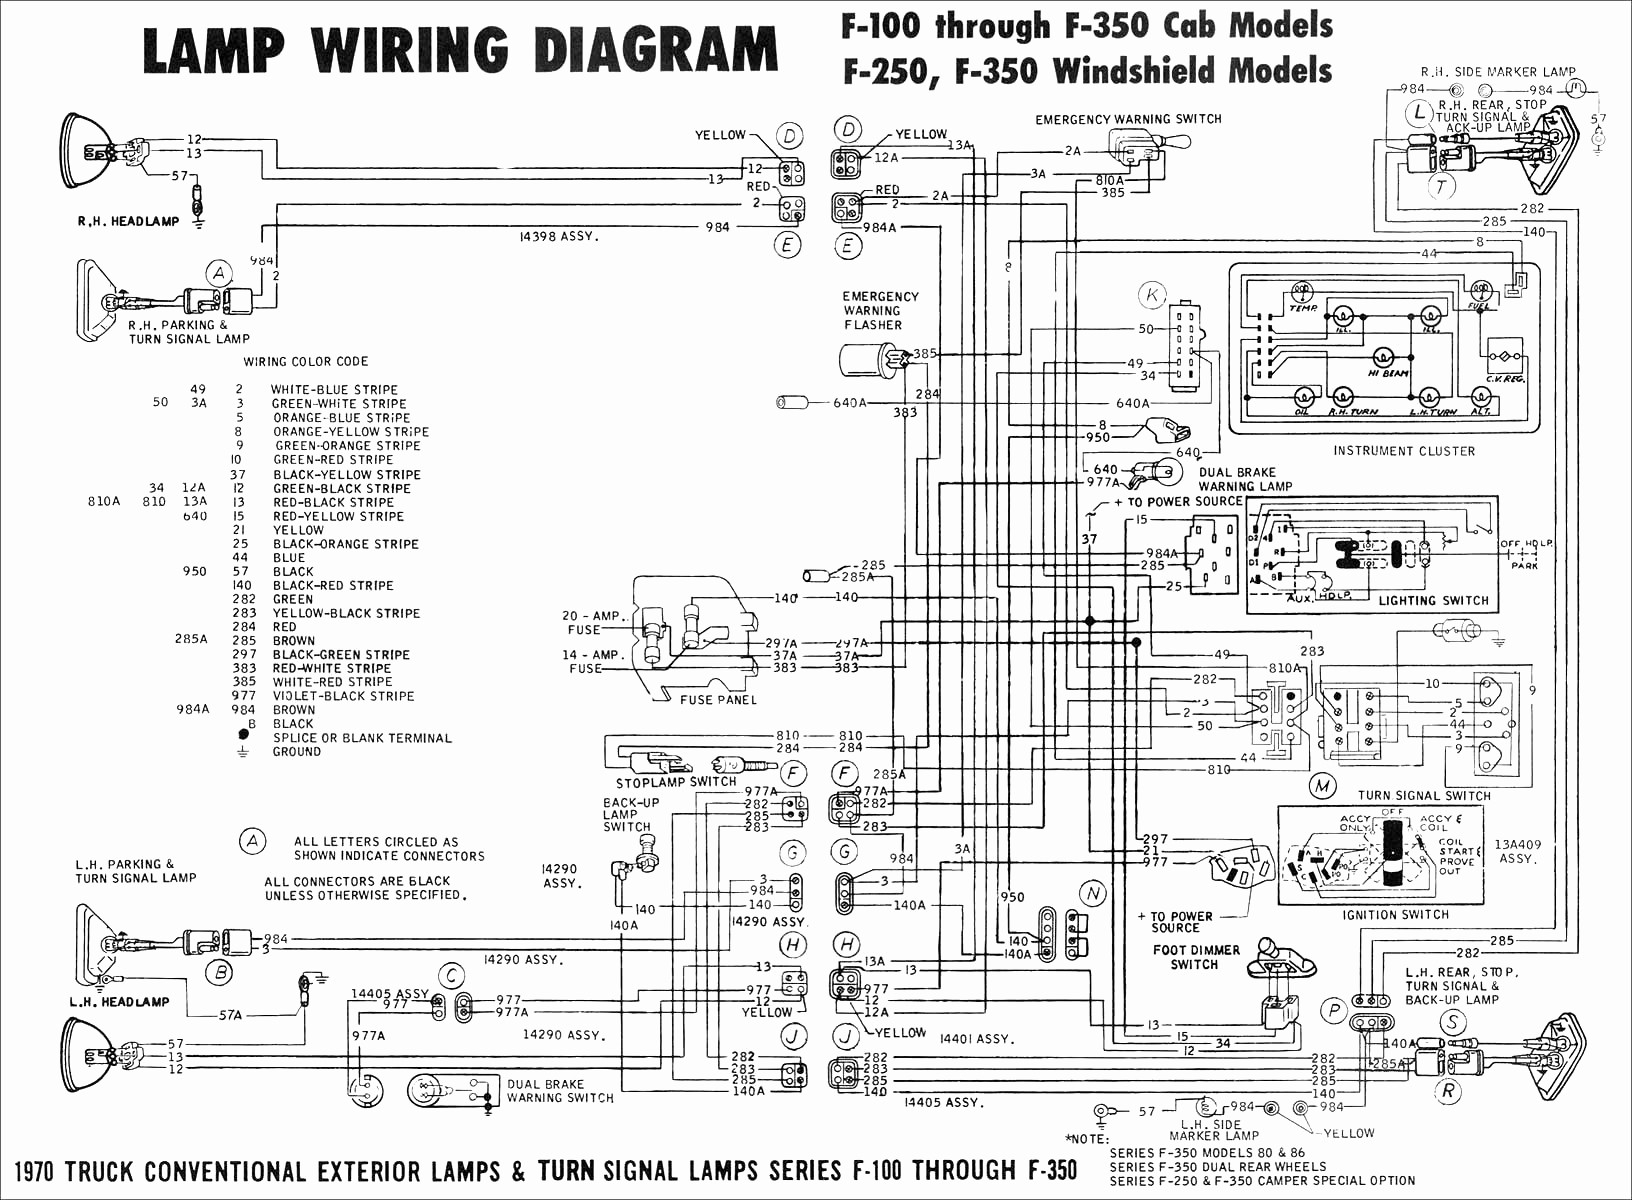 Led Switch Circuit Diagram Likewise Dimmer Switch Circuit